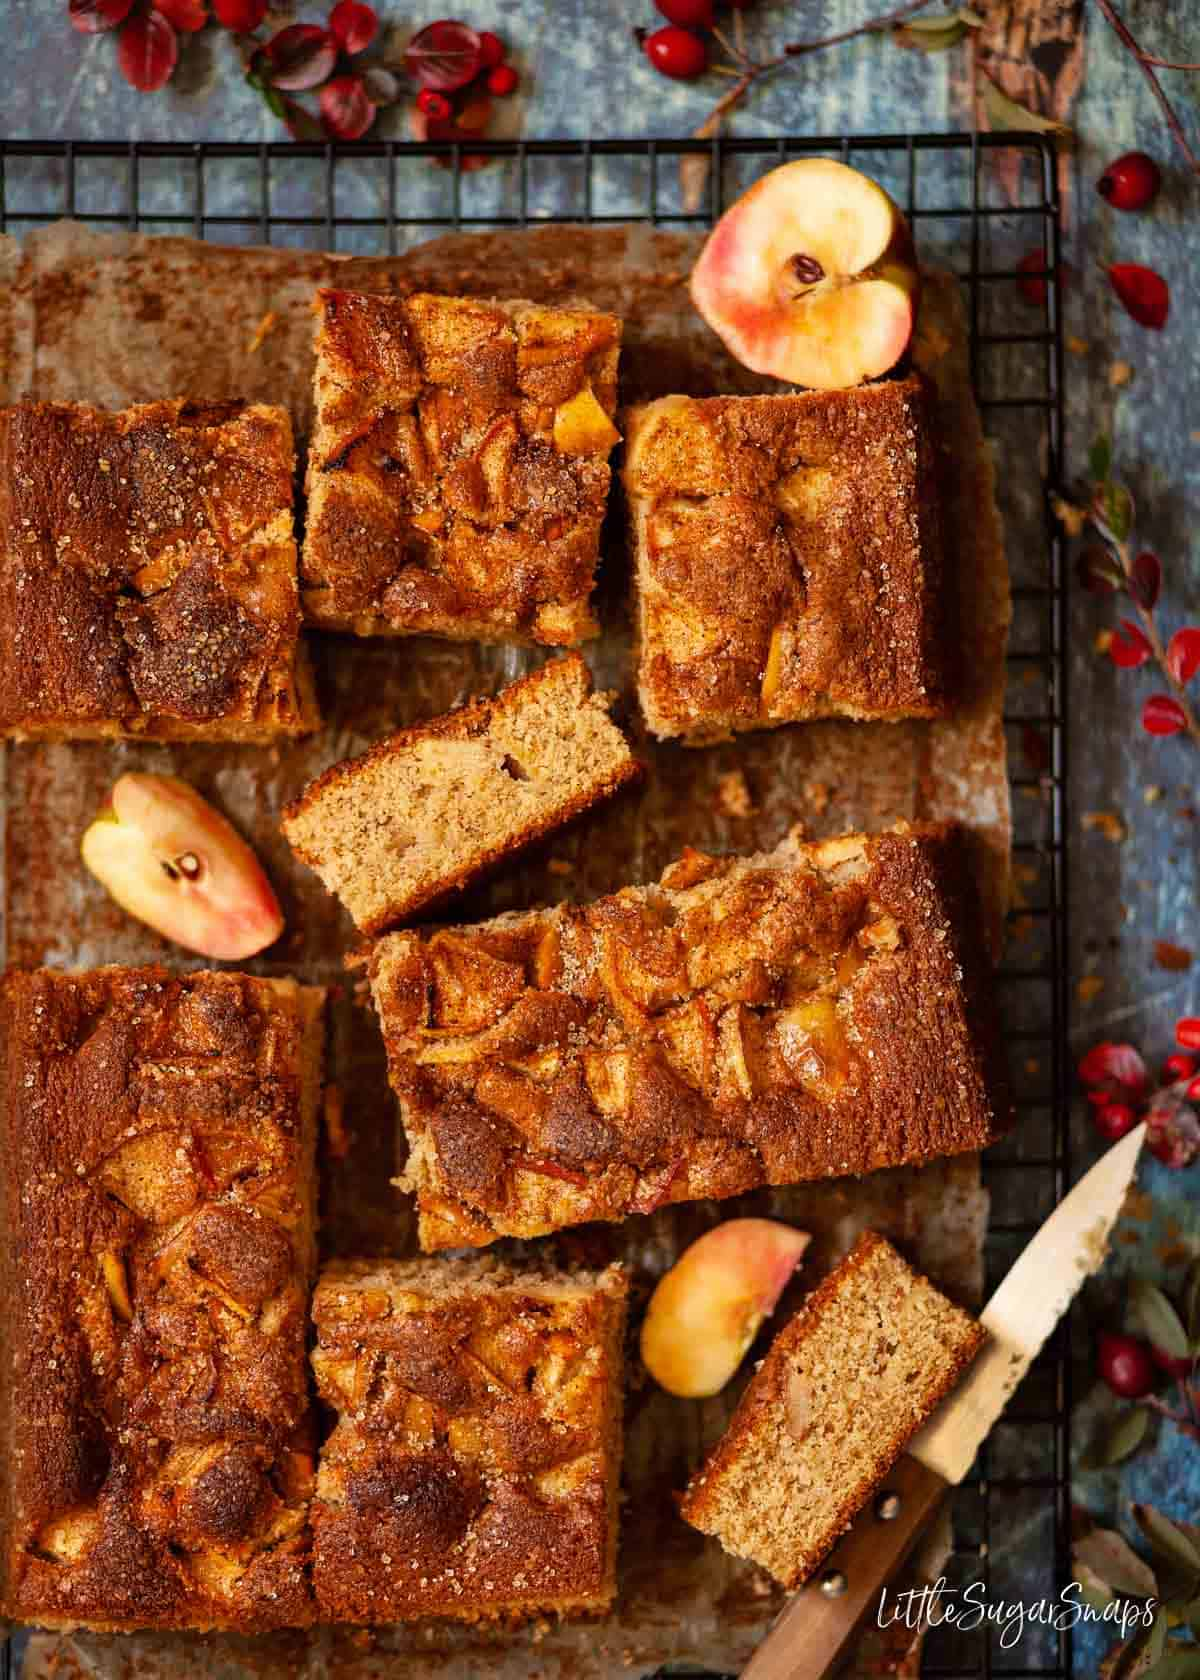 Spiced Apple traybake cake cut into pieces on a wire rack